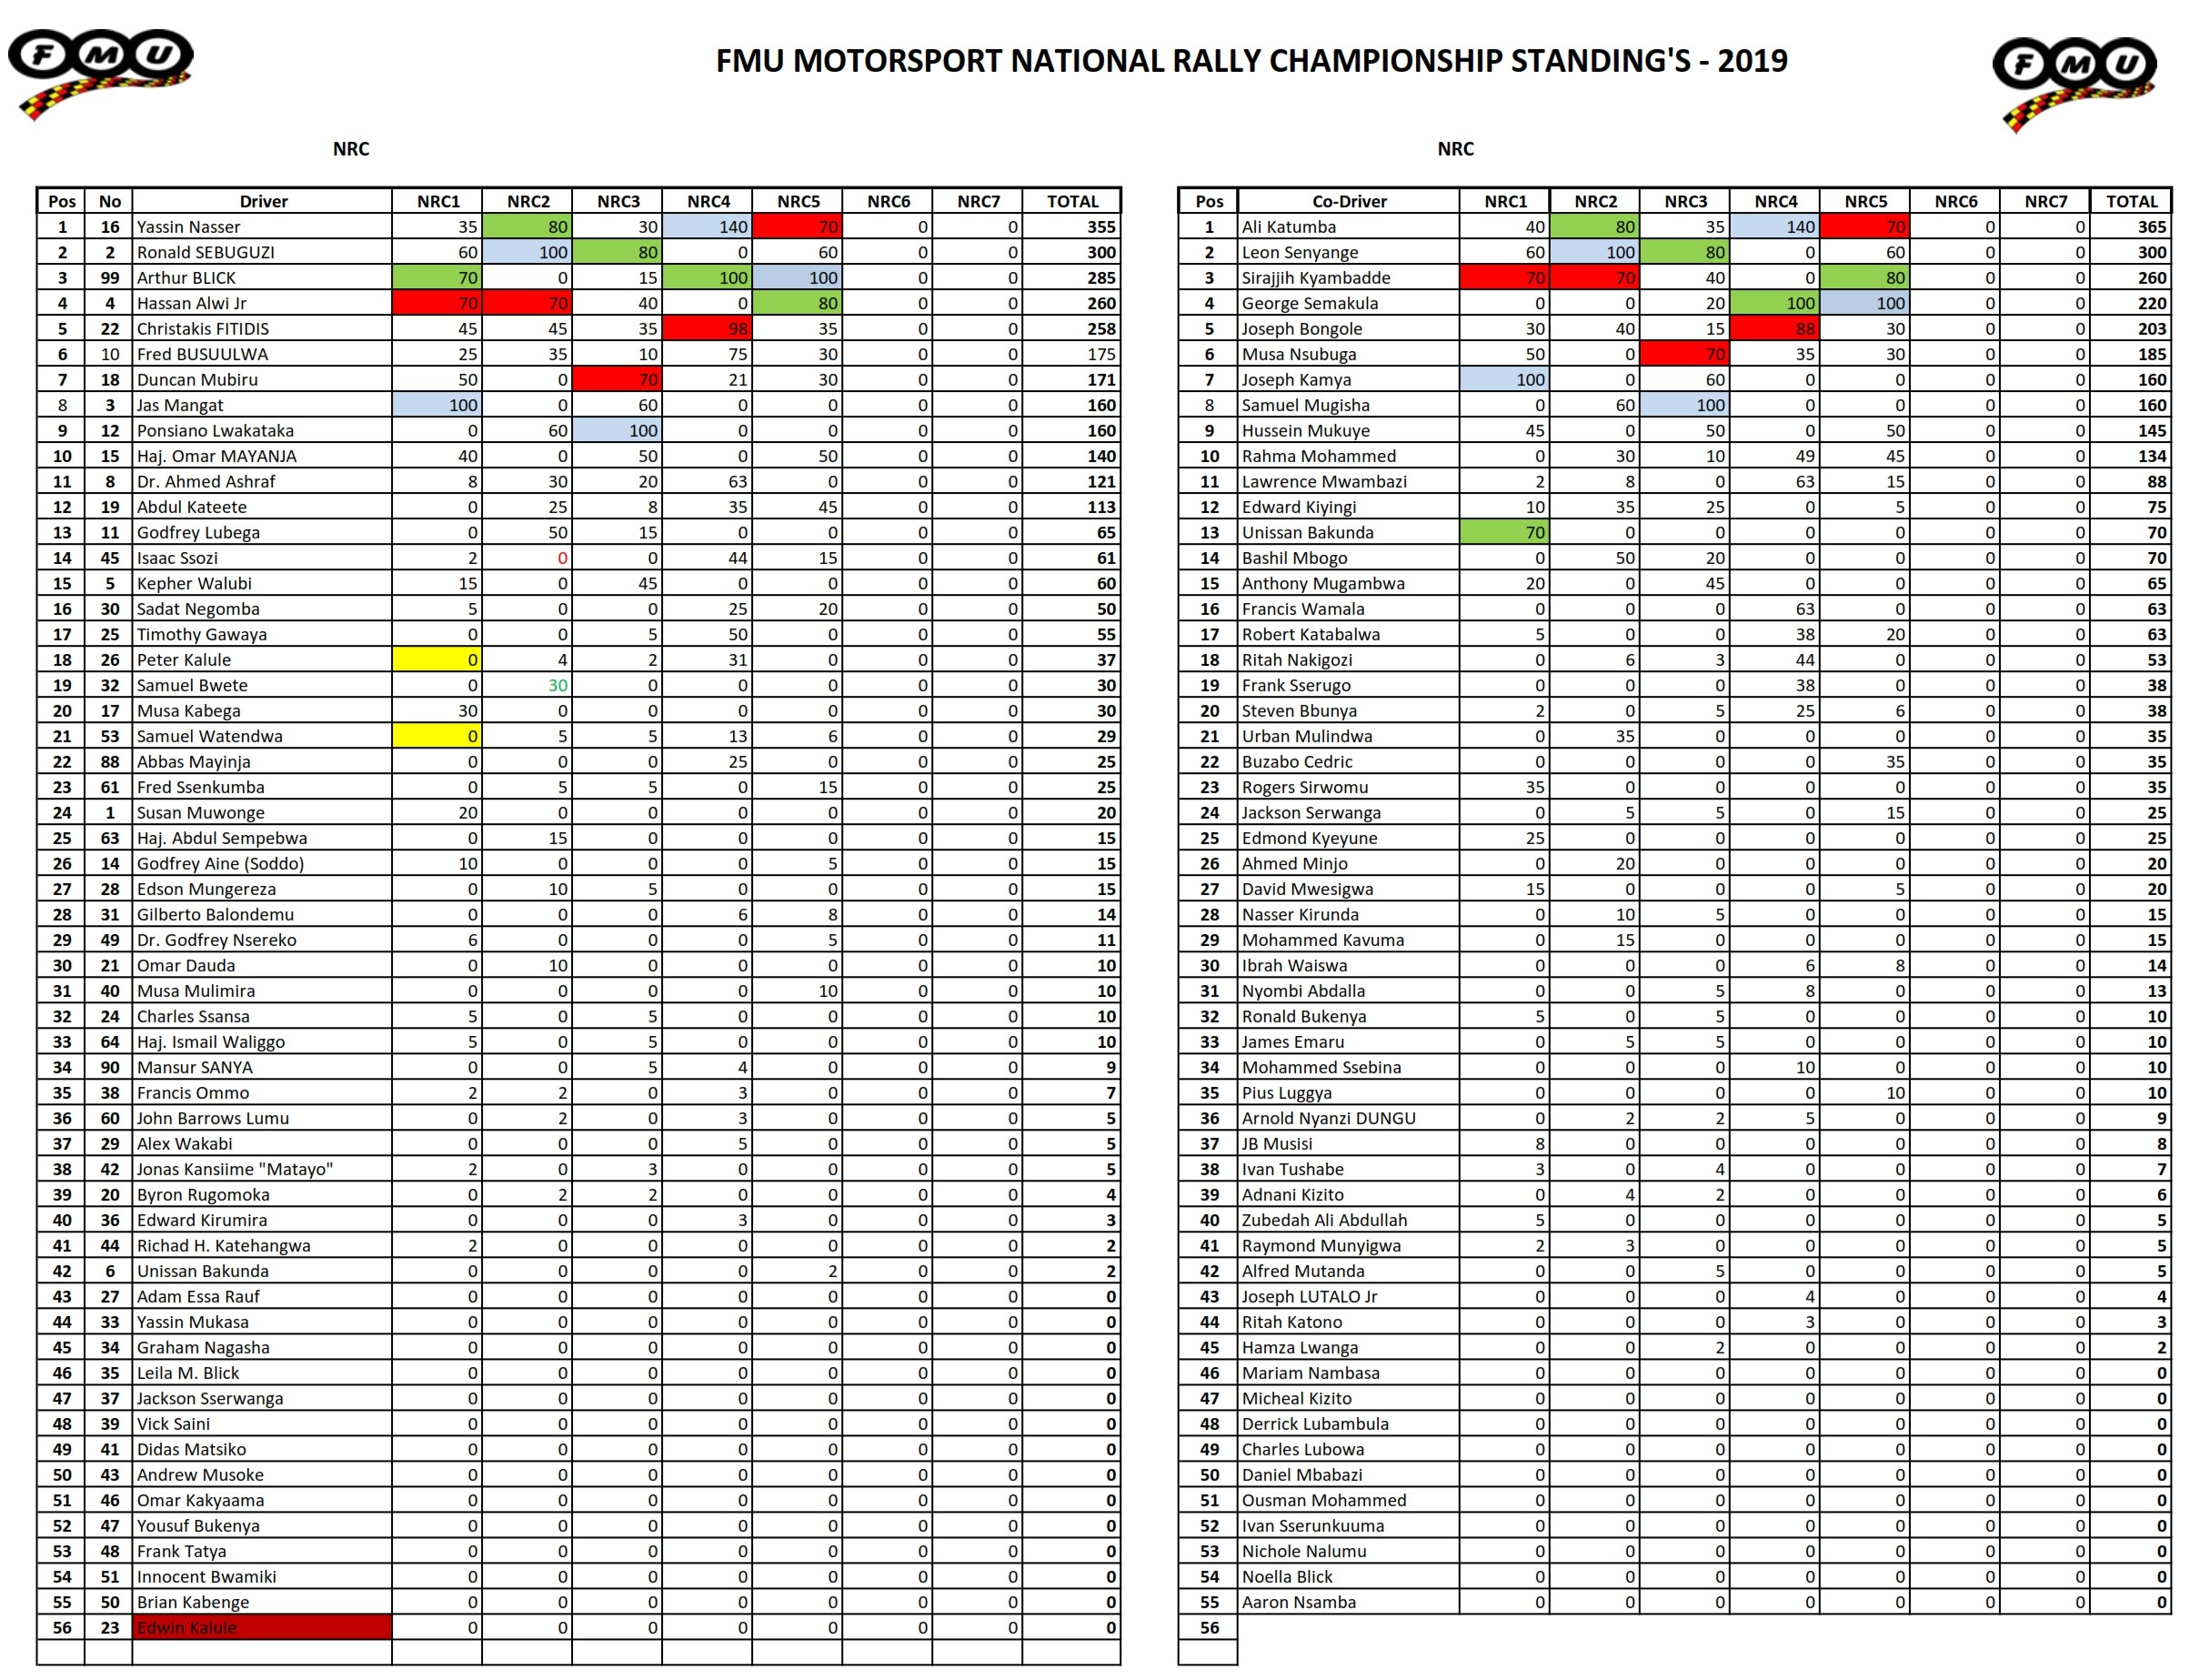 2019 Standings afetr Round 5